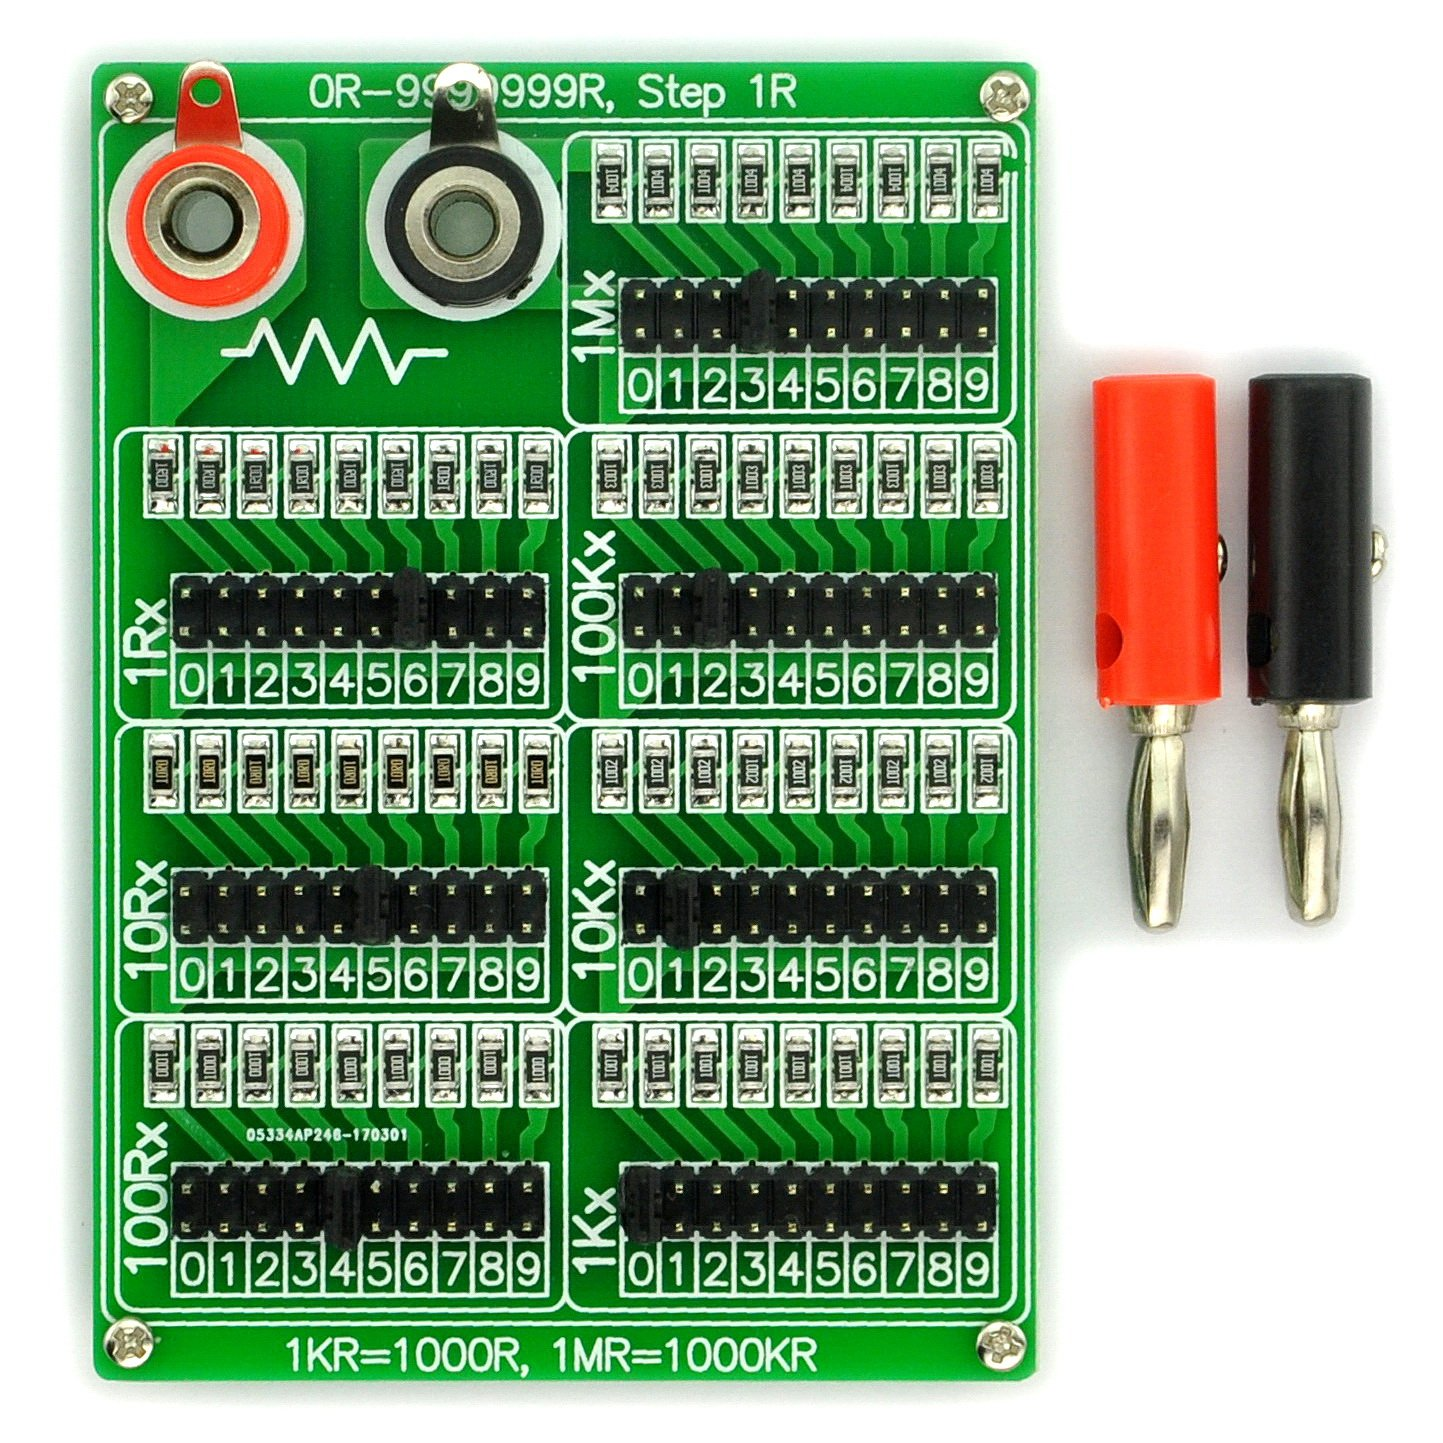 Electronics Salon 1r 9999999r Seven Decade Freshly Cut Circuit Boards Are Beautiful Pinterest Programmable Resistor Board Step 1 4w Industrial Scientific